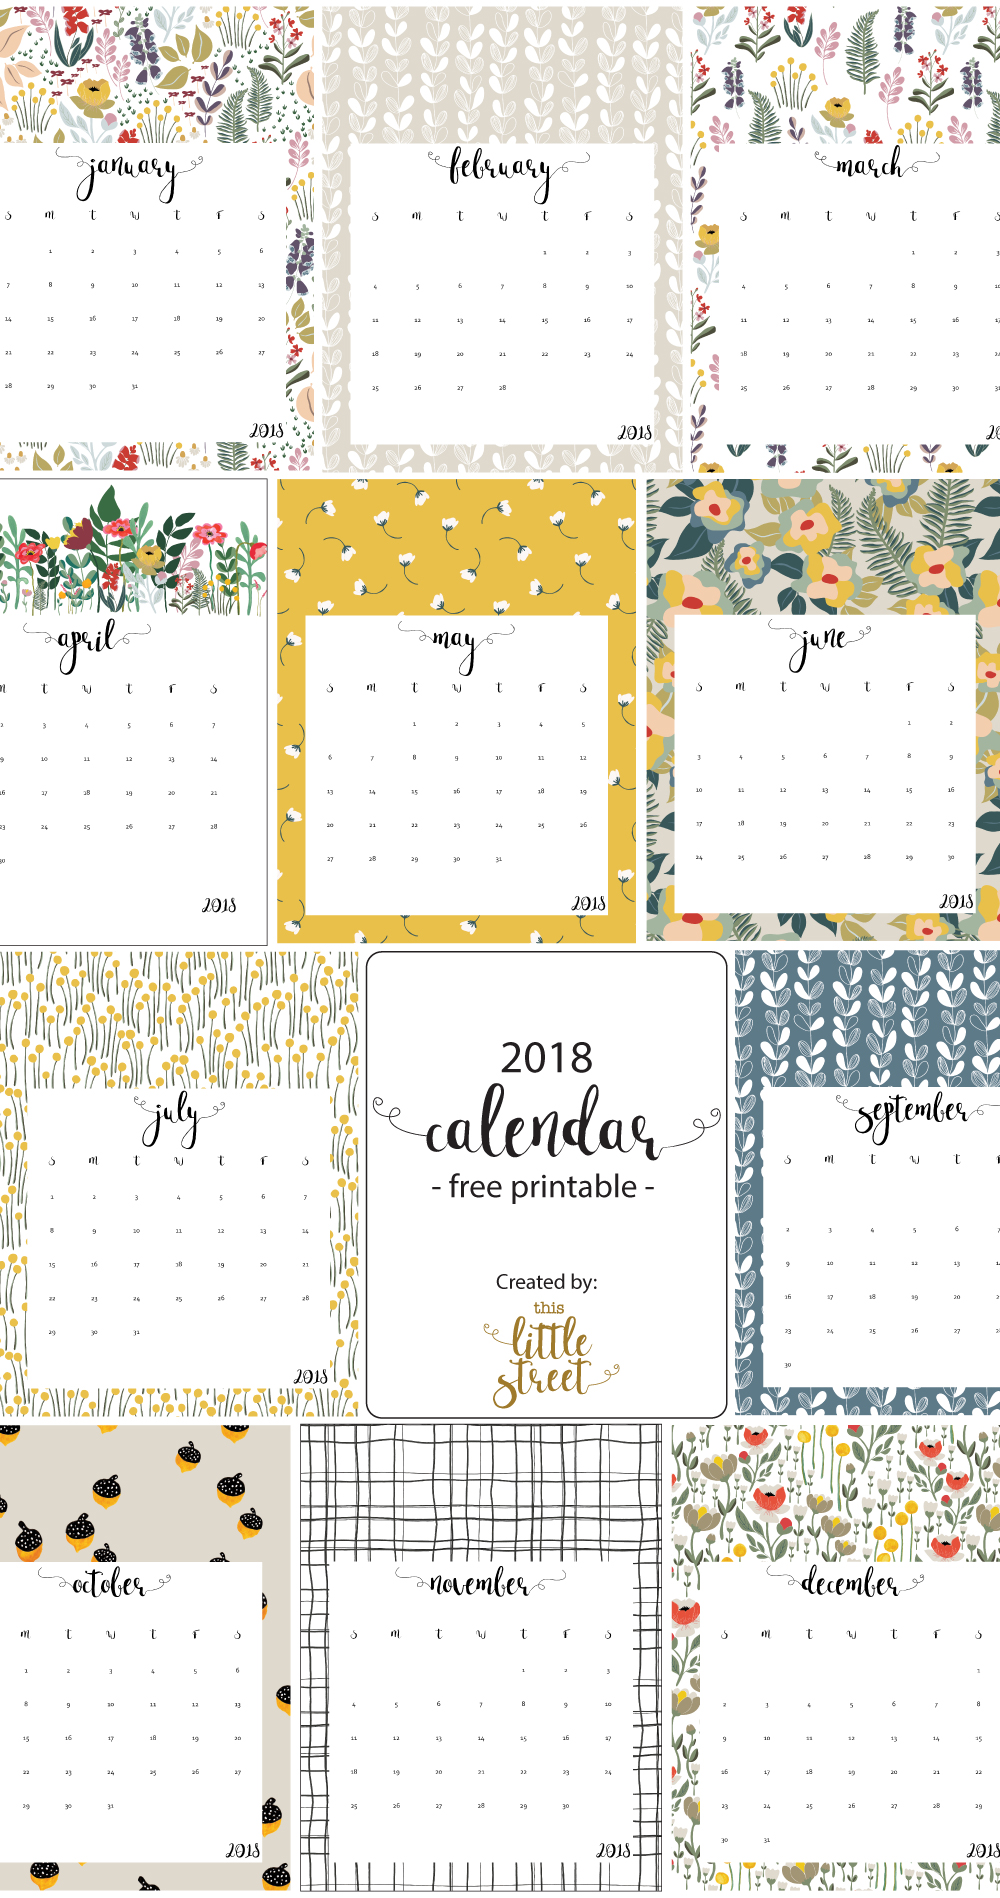 Download Our 2018 Free Printable Calendar!